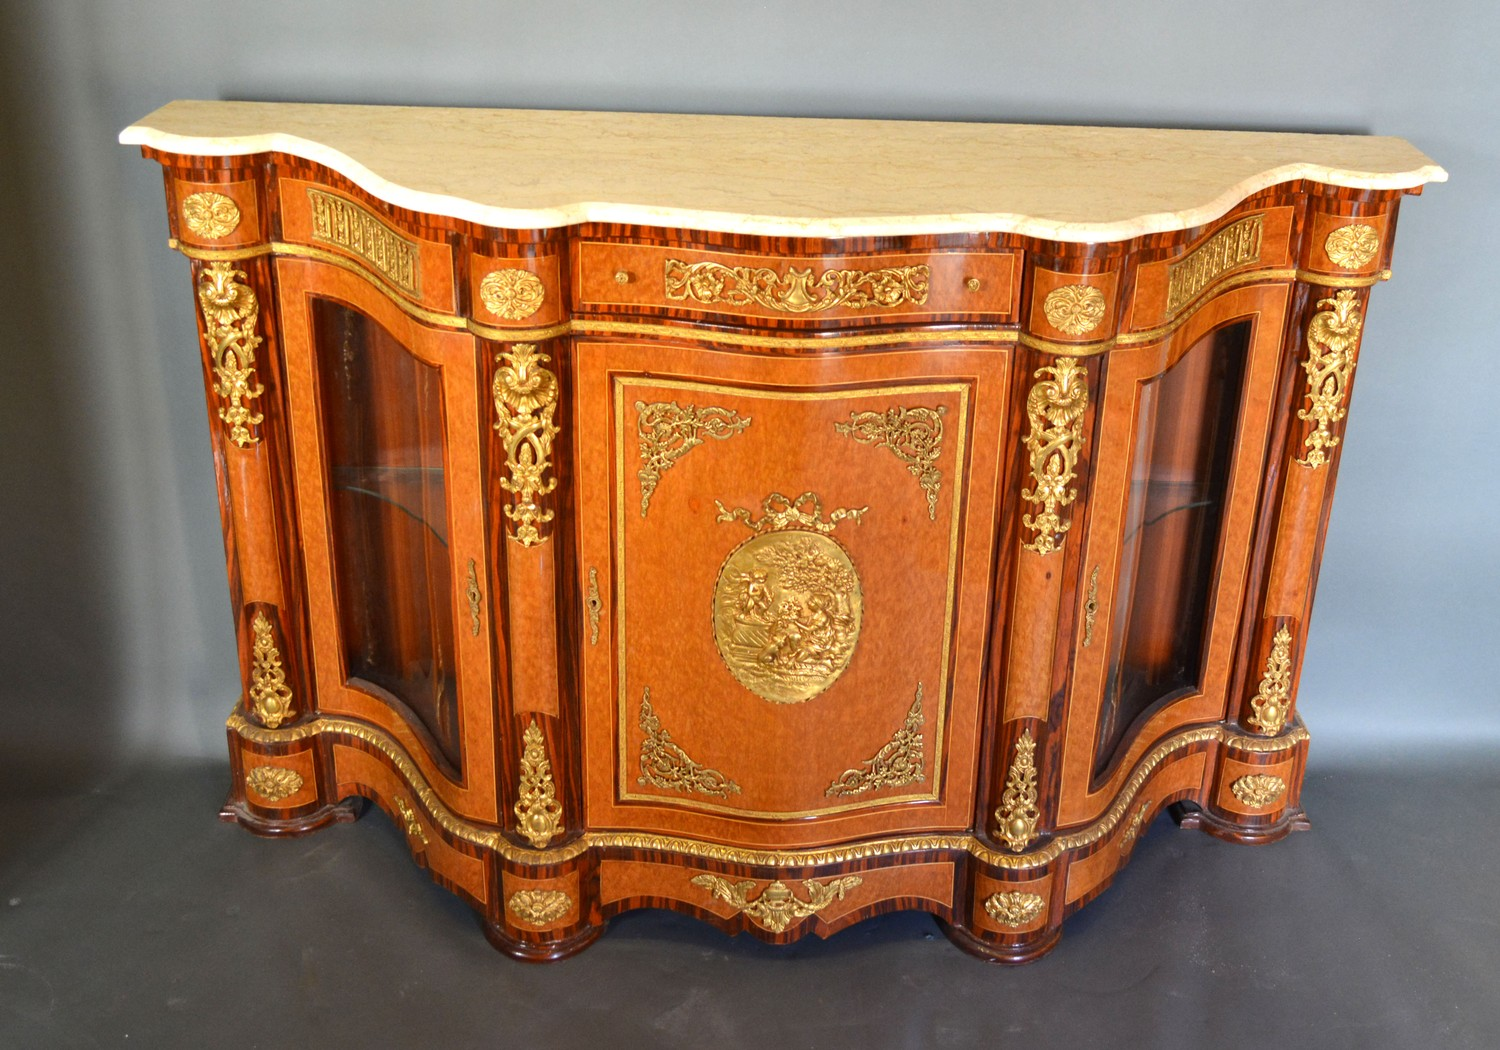 A French style walnut, gilt metal mounted serpentine Credenza cabinet, the variegated marble top - Image 3 of 3